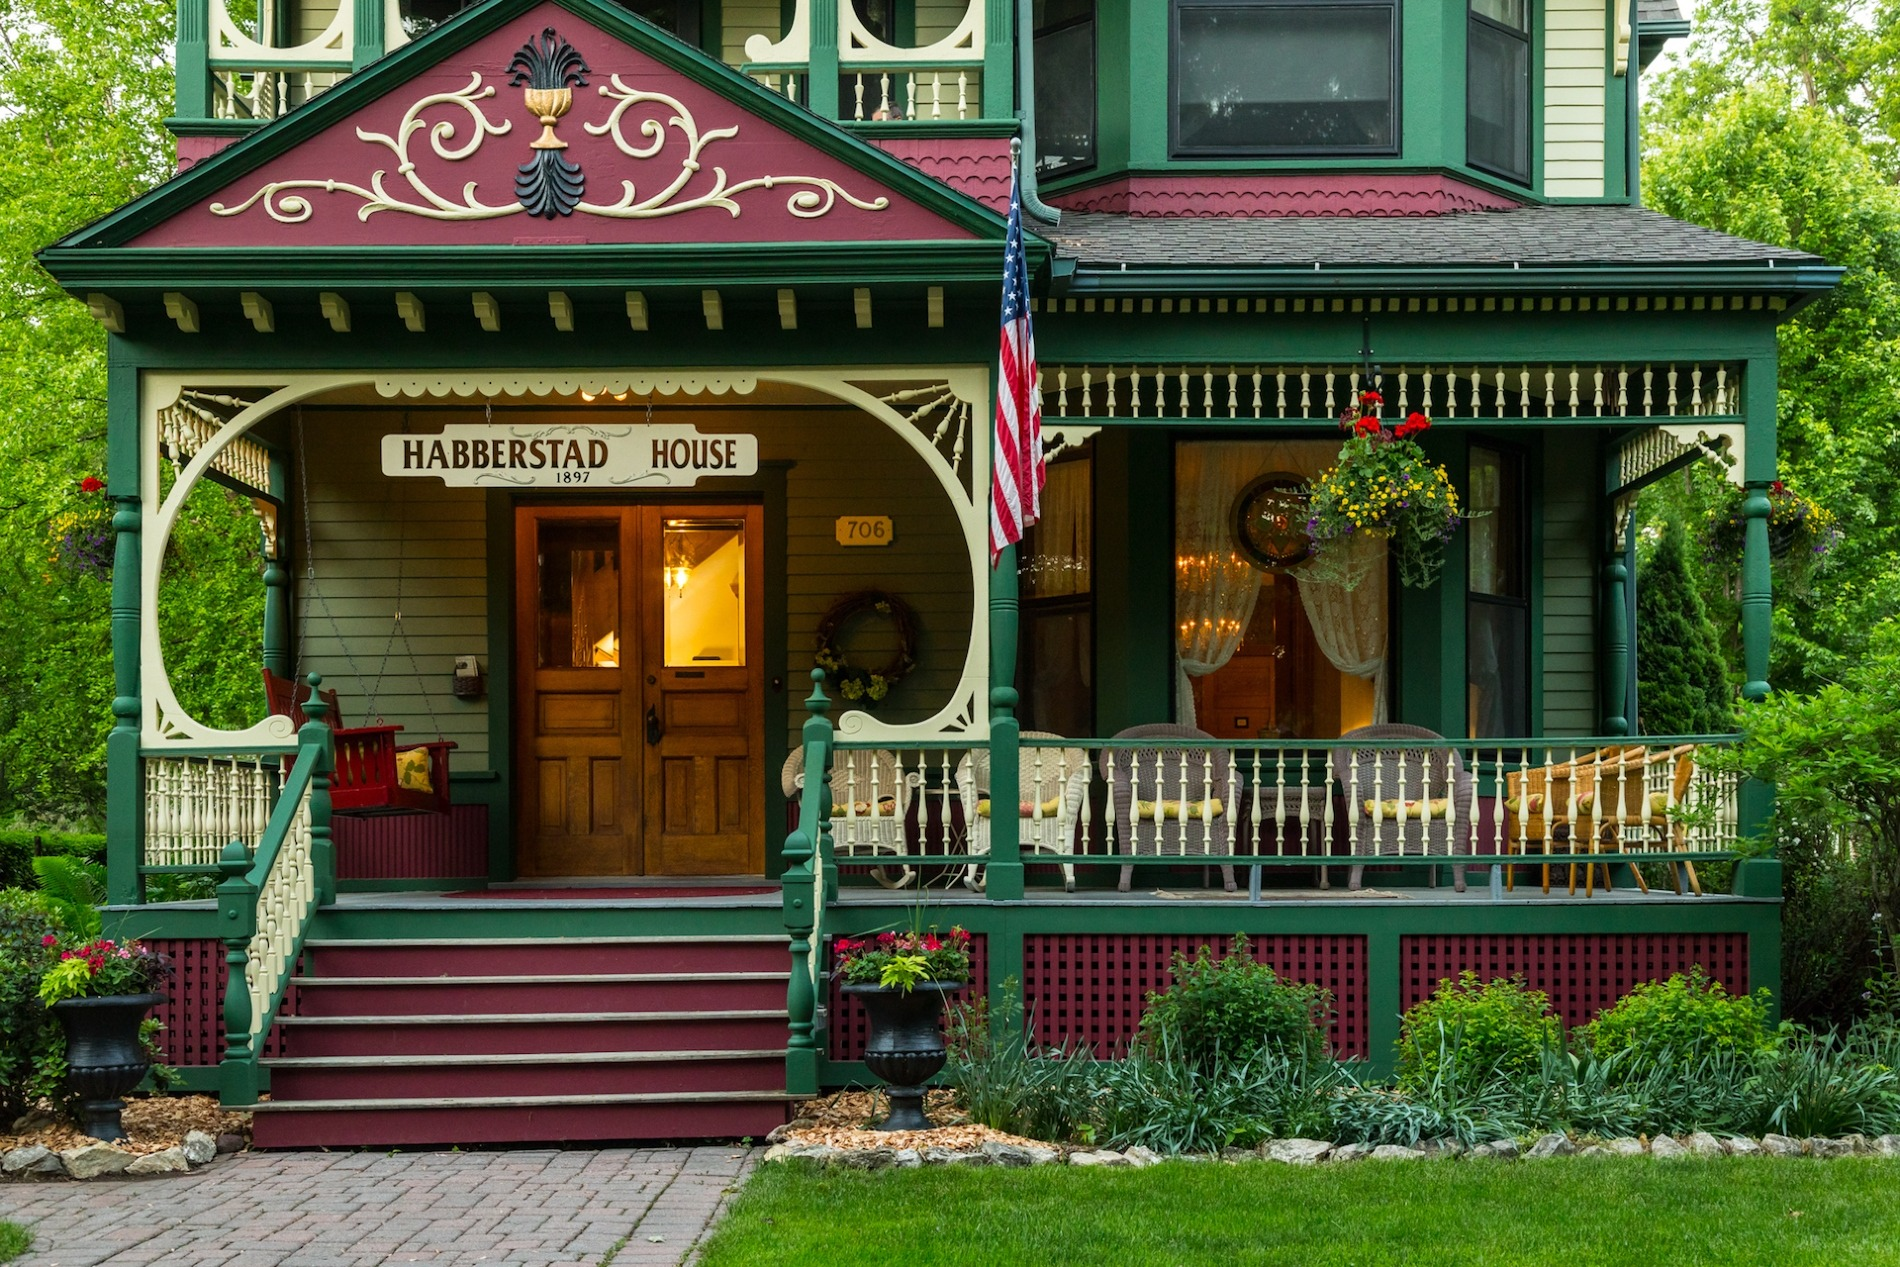 frontporch (2) - Habberstad House Bed and Breakfast (1) (1)